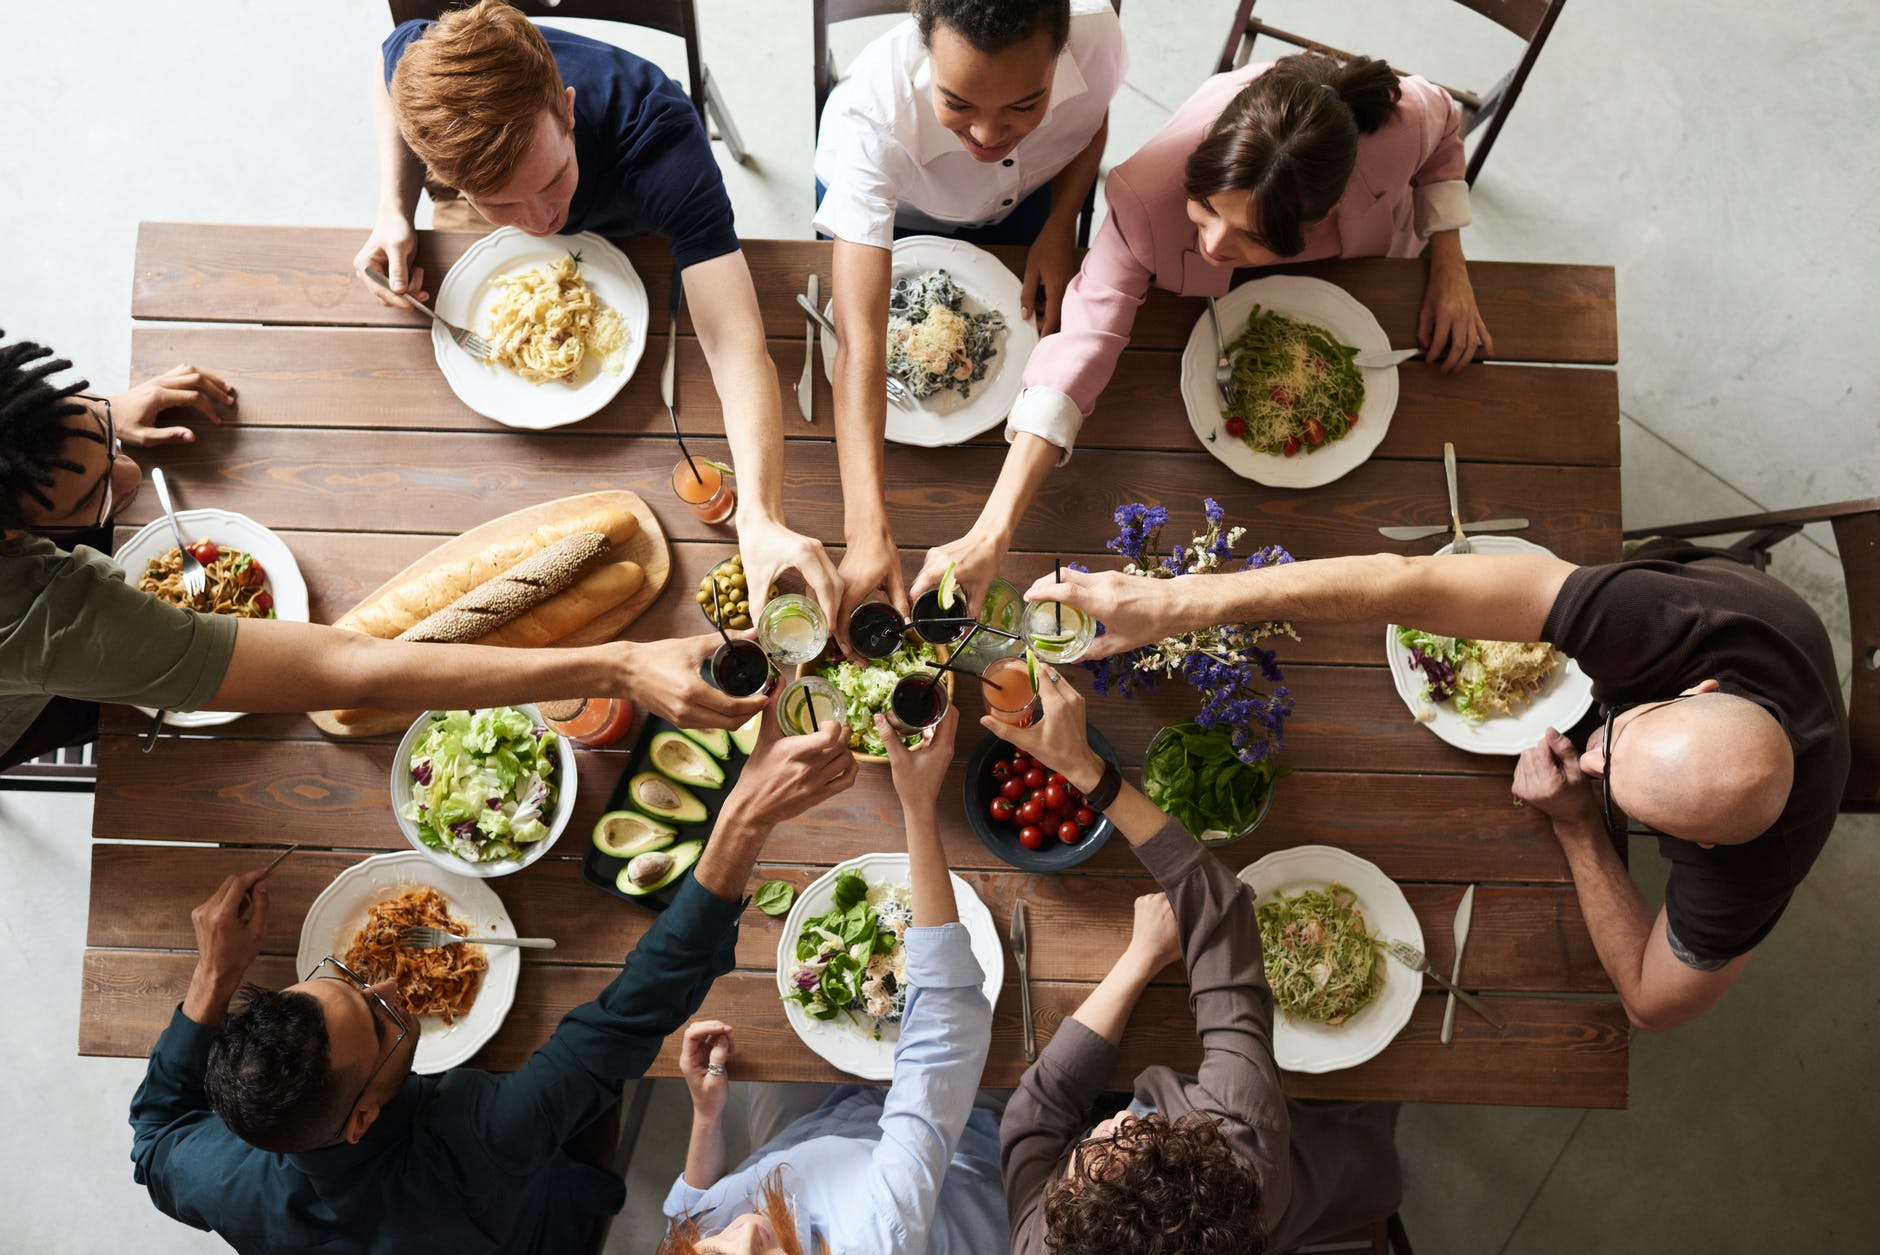 aerial shot of 8 people sitting around a table eating lunch and clinking their glasses together